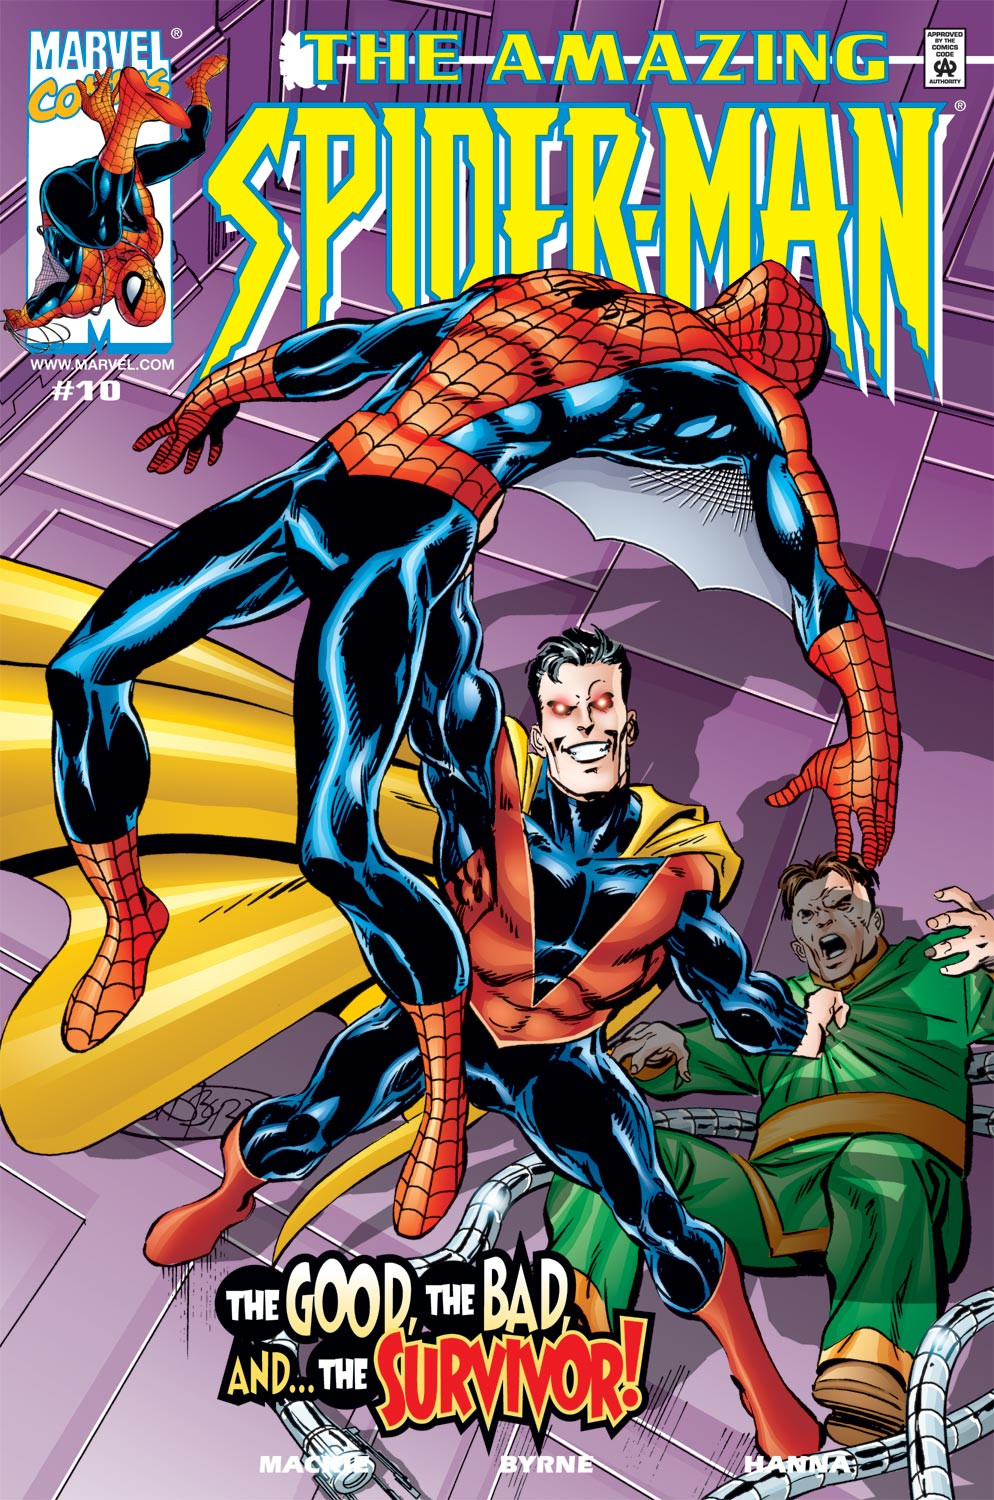 The Spectacular Spider-Man Annual Vol 1 10 | Marvel Database ...